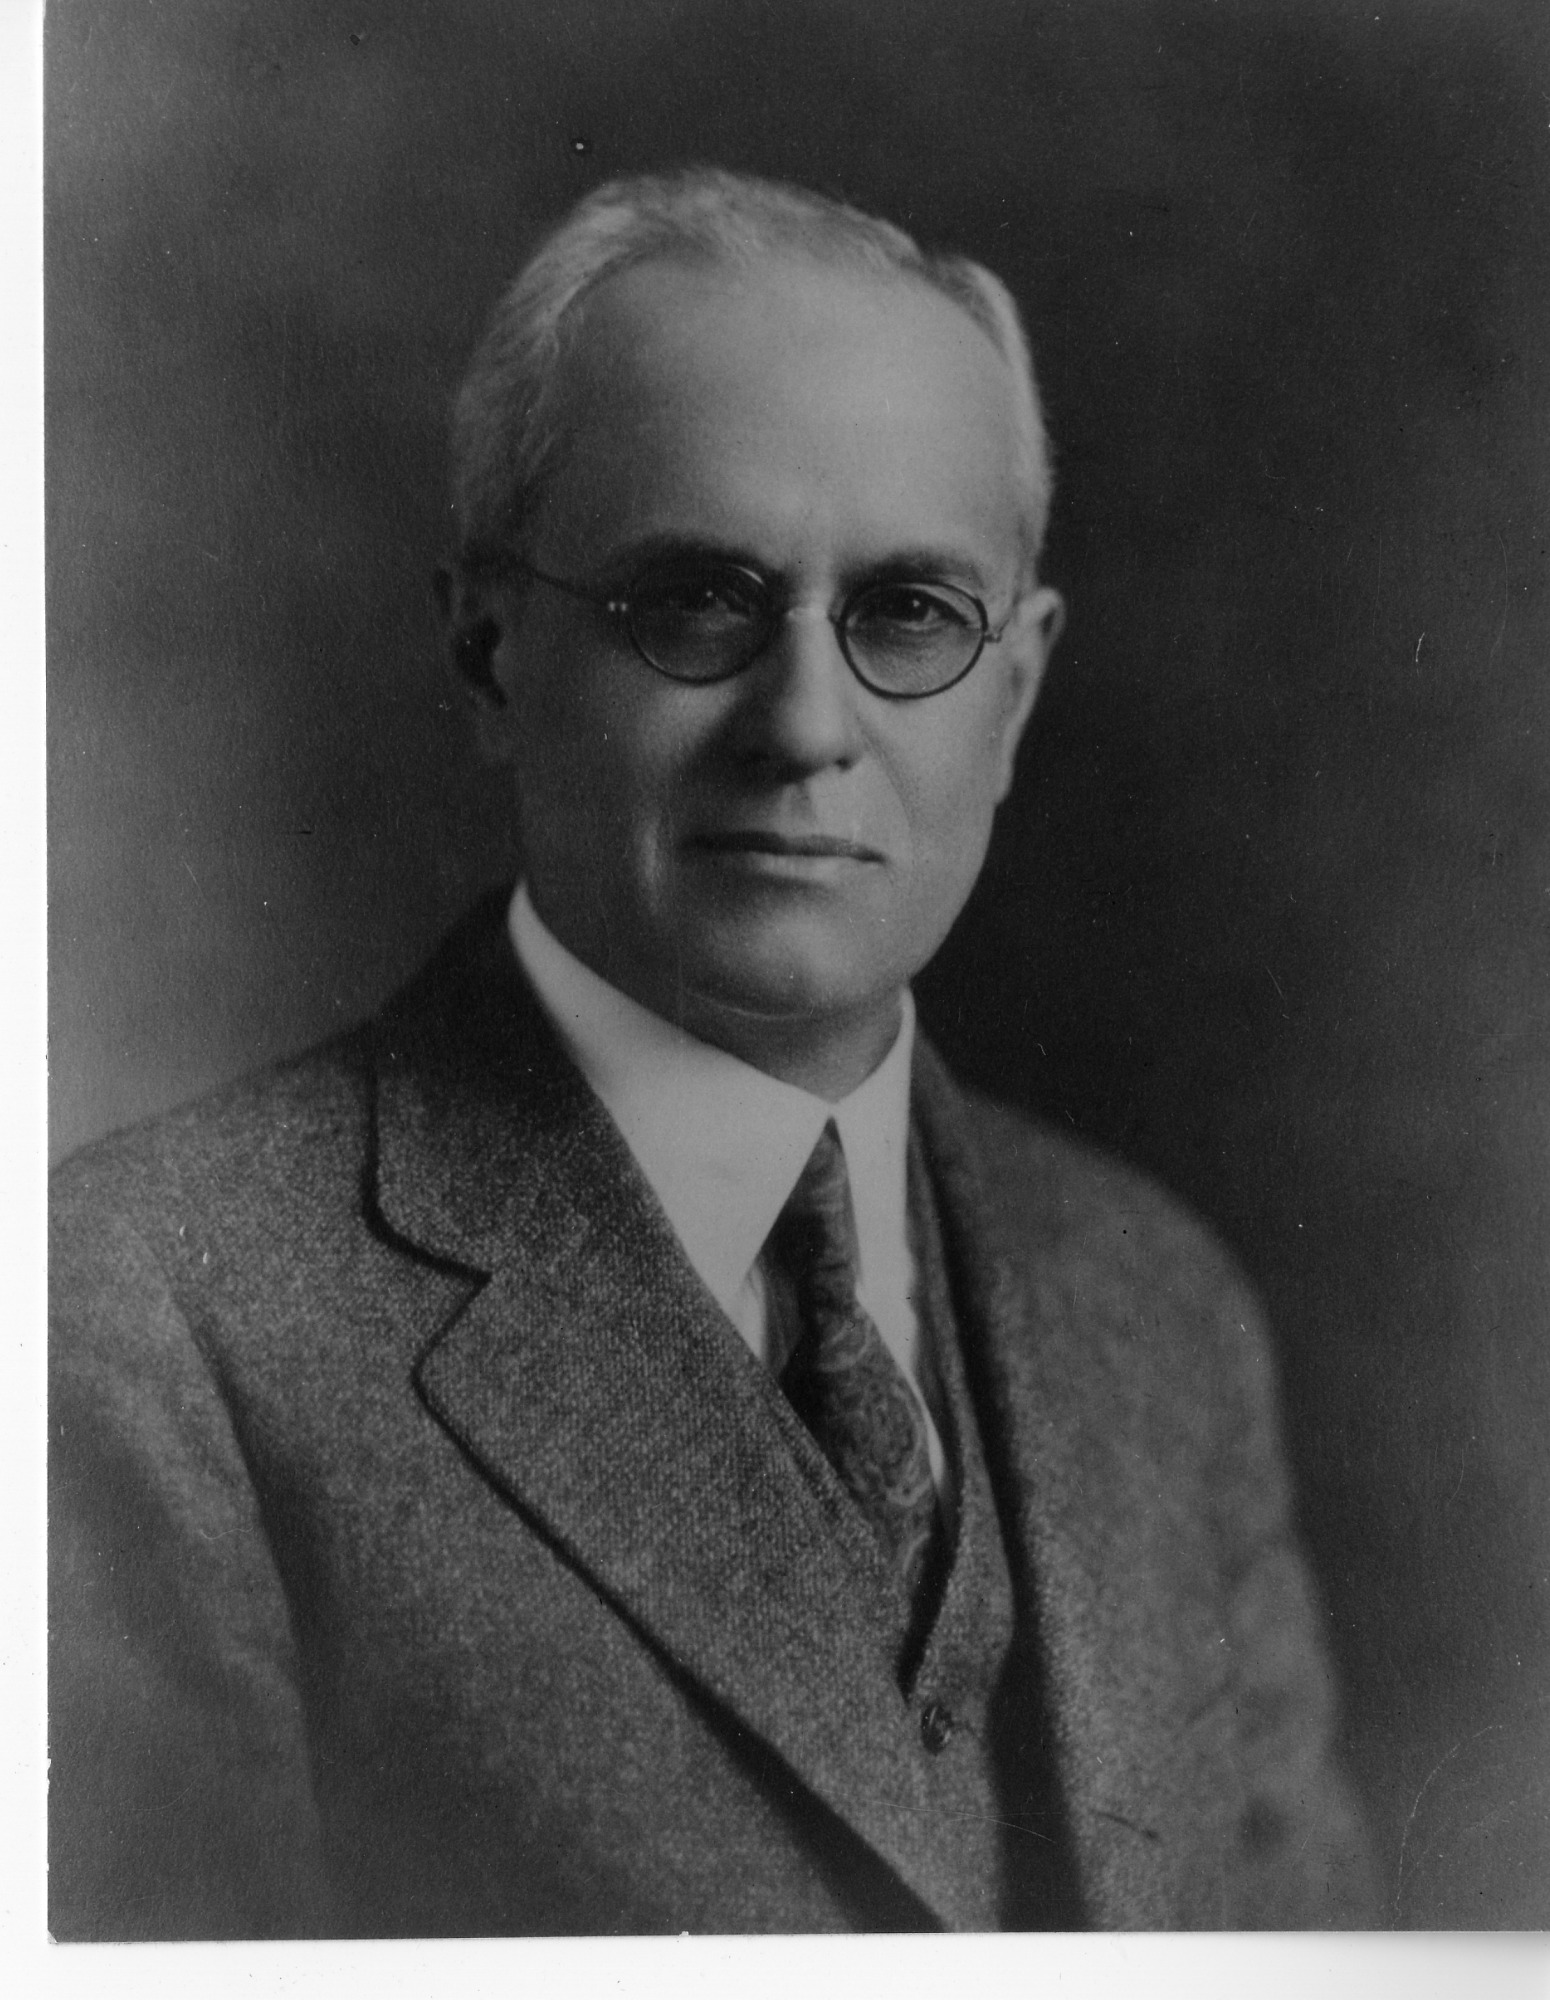 Theodore J. Bradley (1874-1936), Smithsonian Institution Archives, SIA Acc. 90-105 [SIA2007-0337].